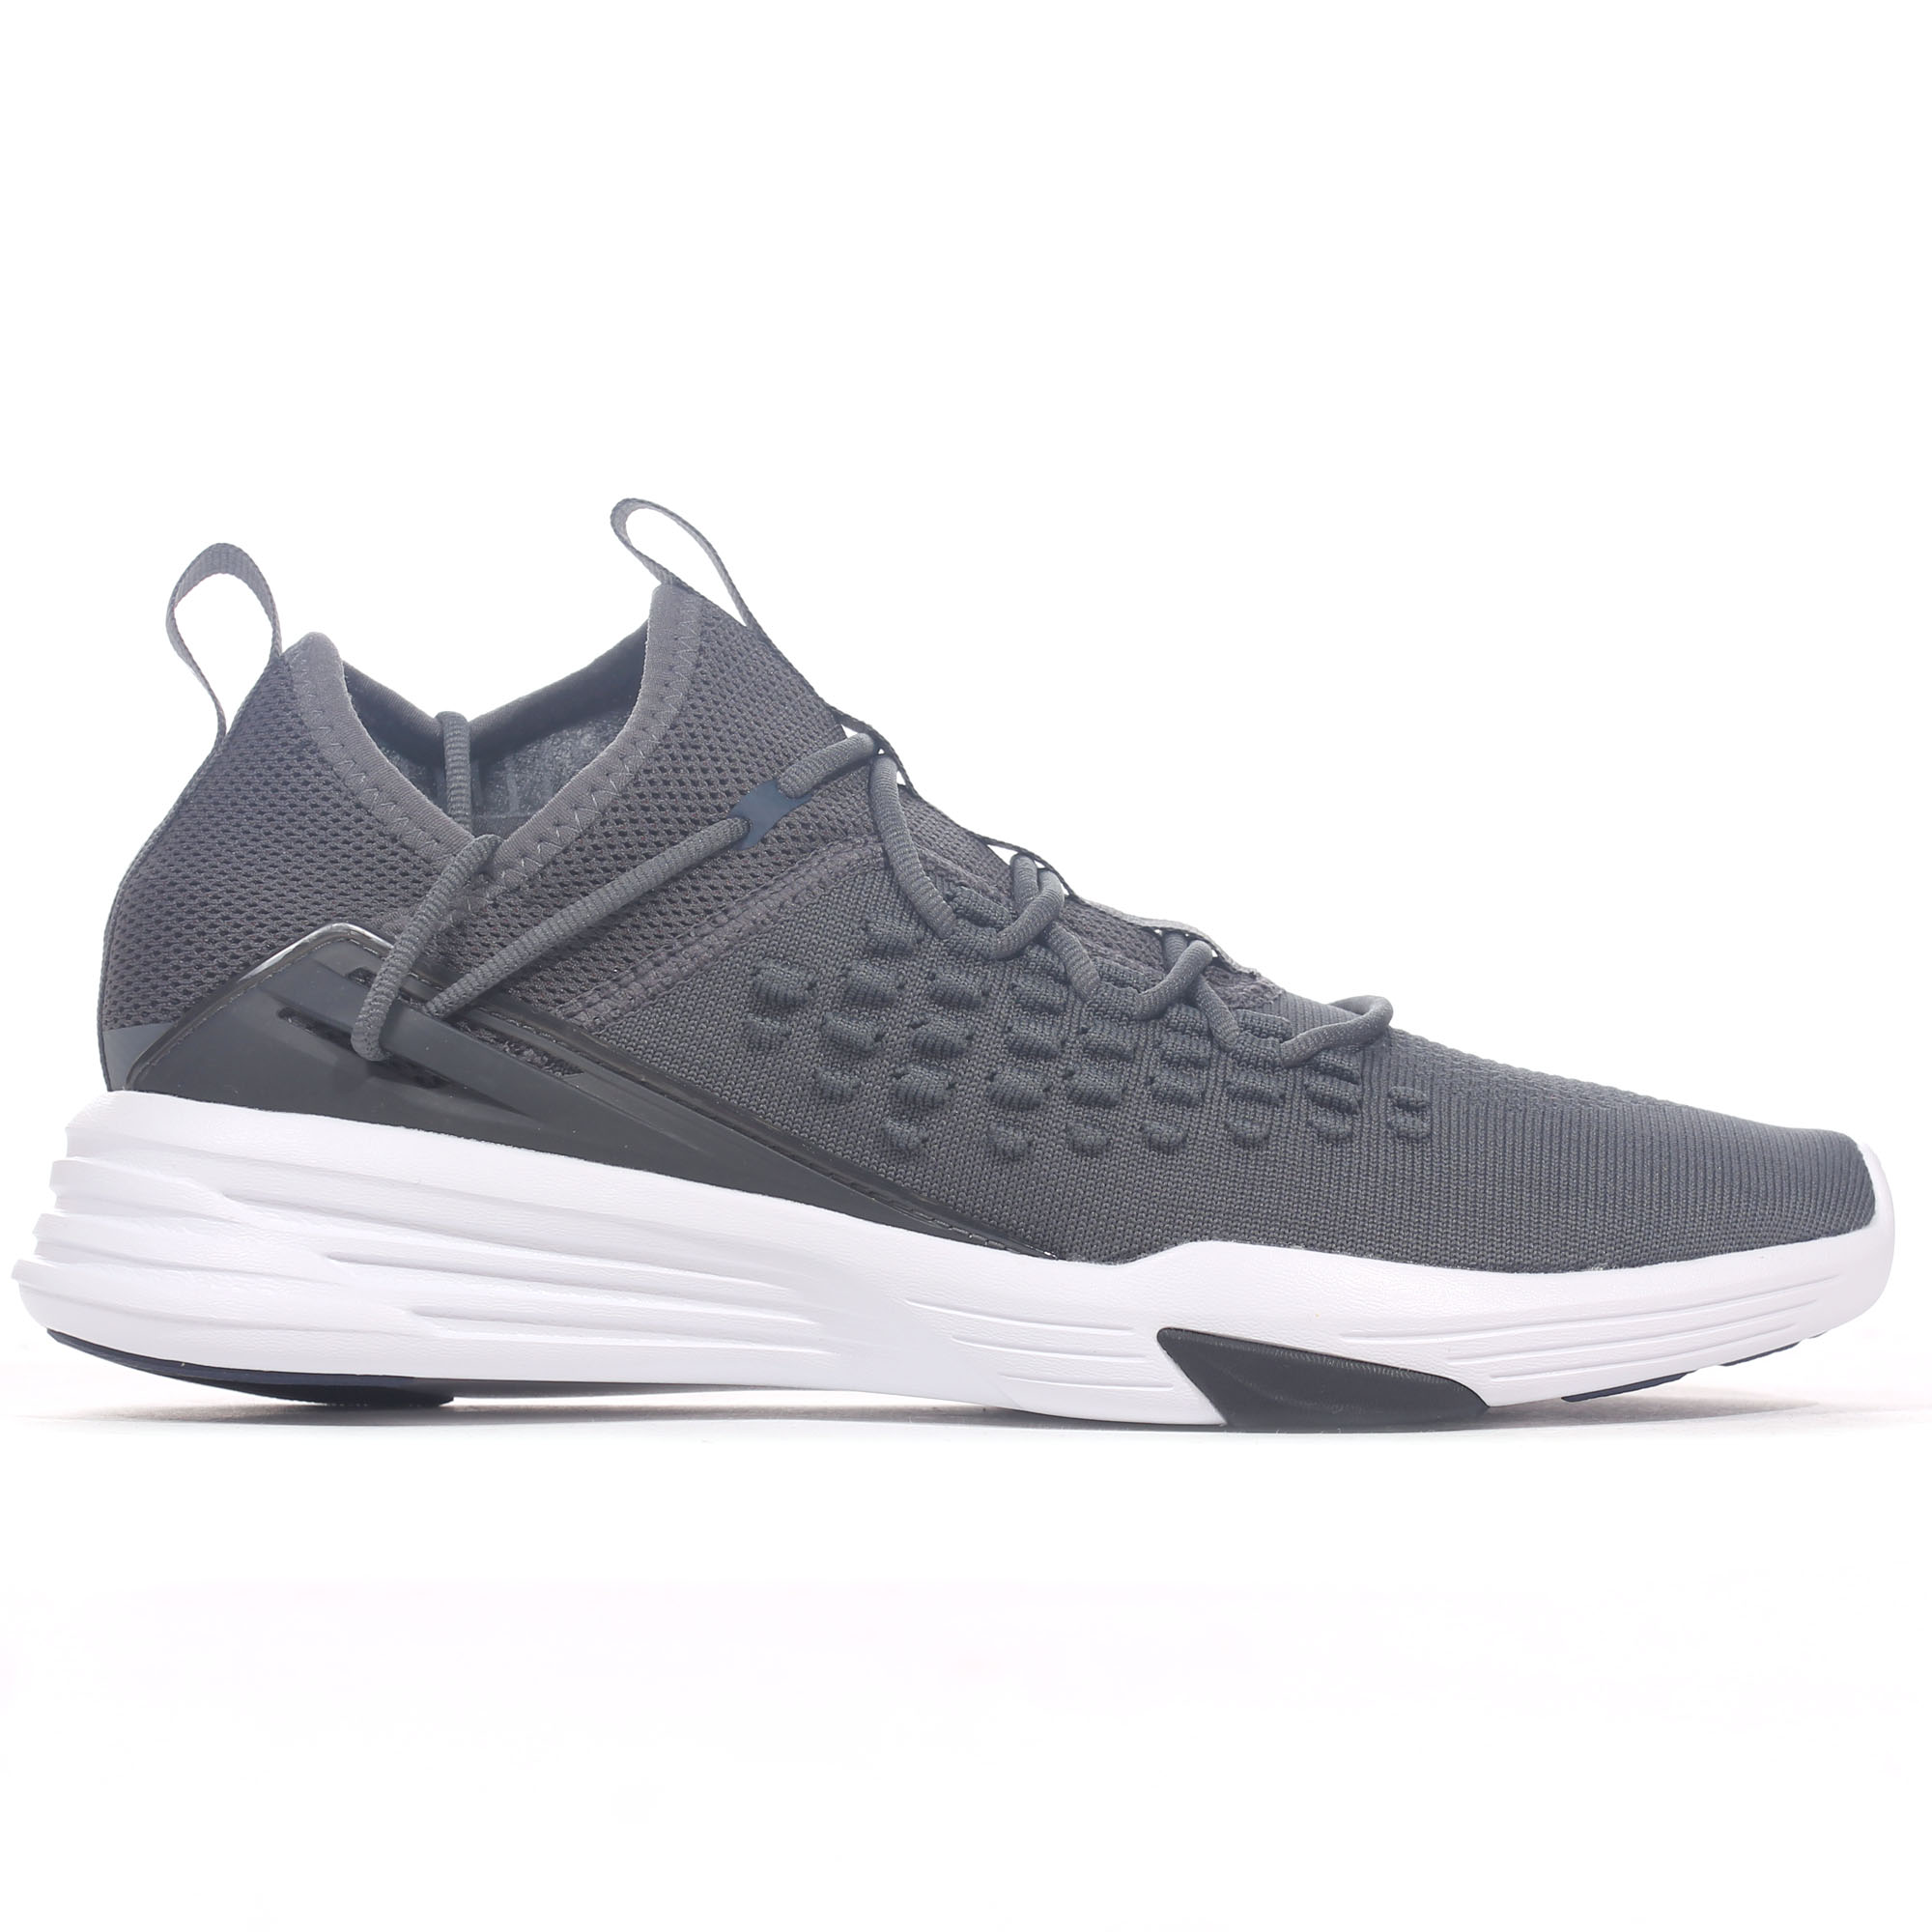 70262ac4a43 Puma Mantra Fusefit Mens Exercise Fitness Training Trainer Shoe Grey ...